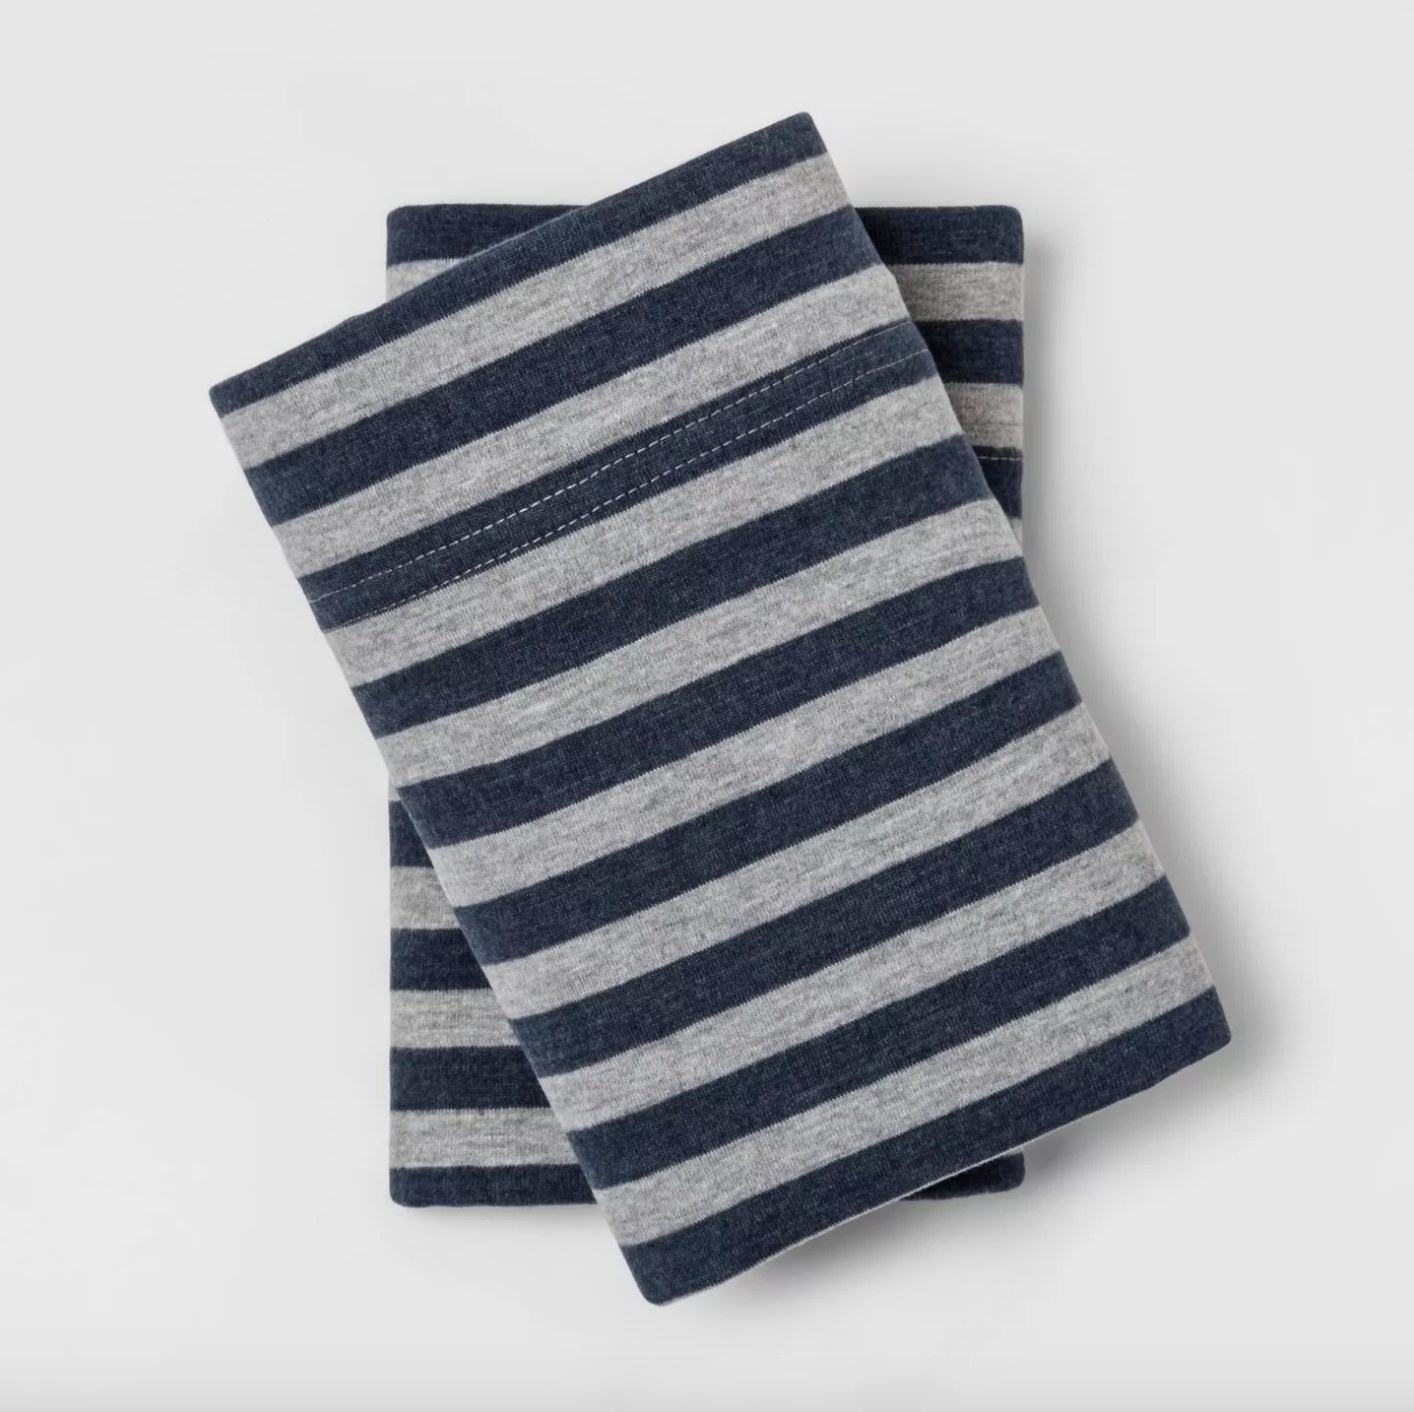 The striped pillowcase set in navy/gray